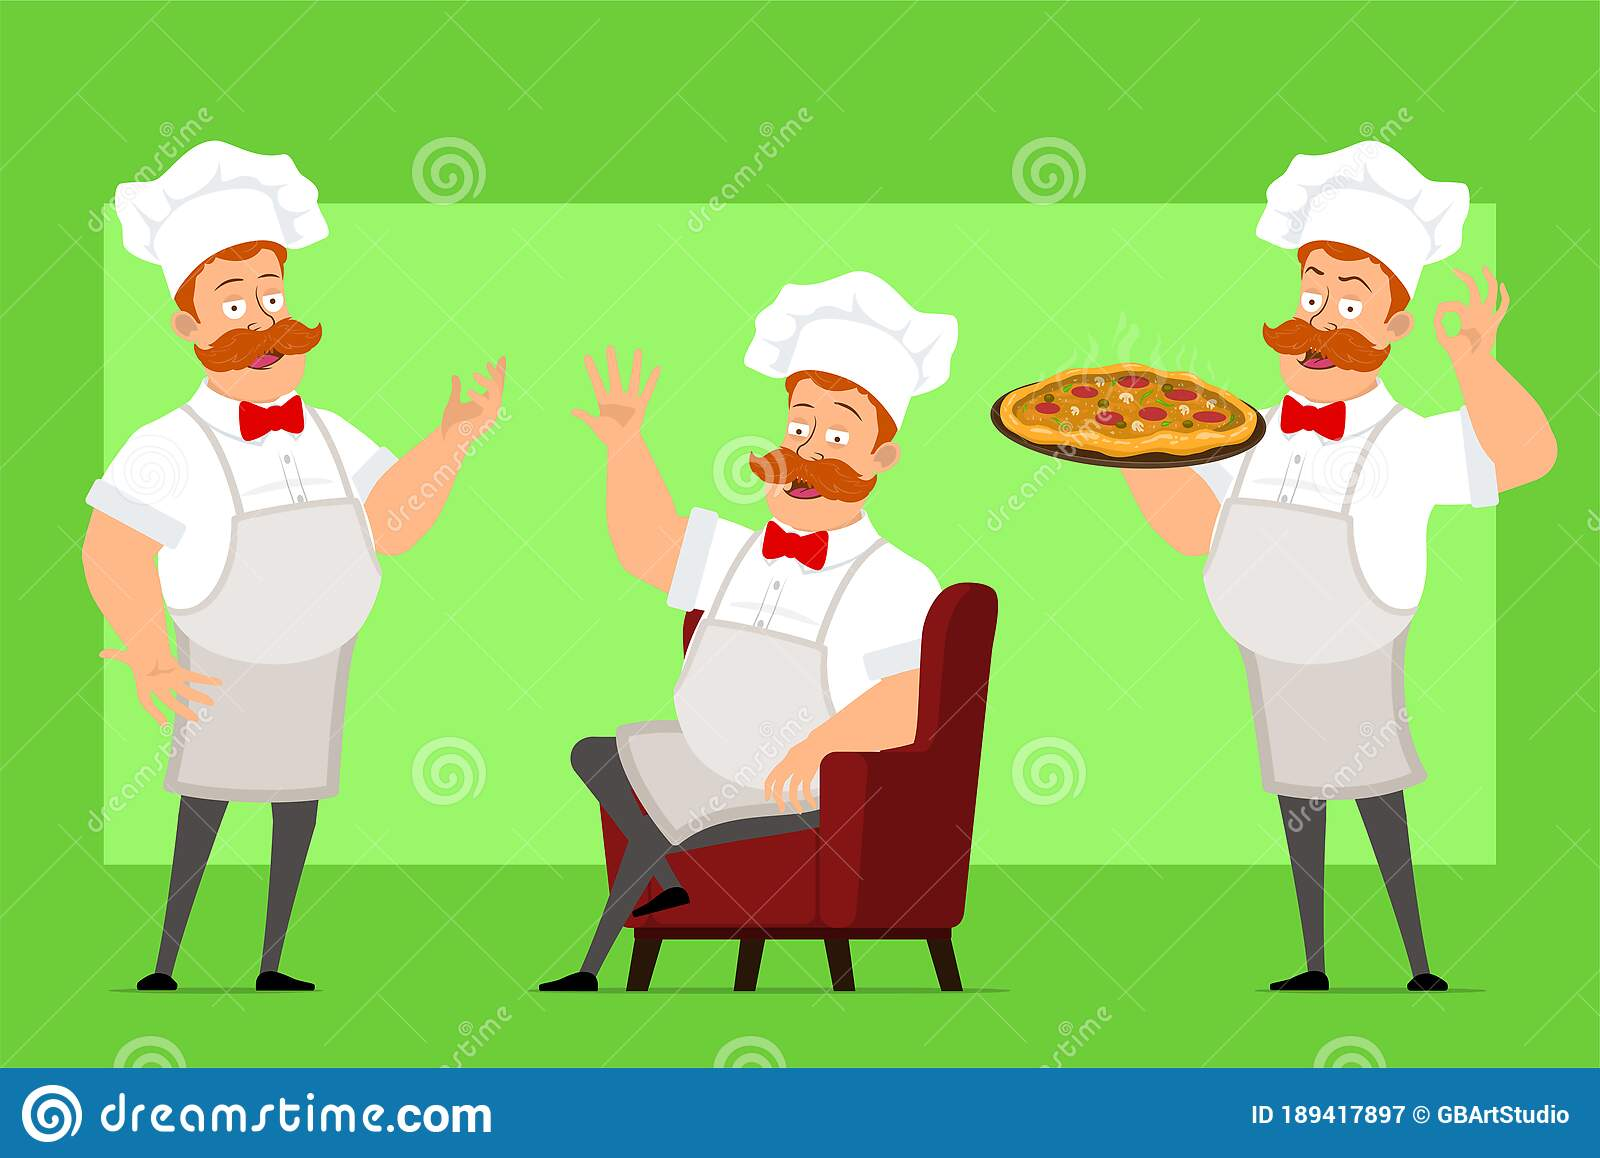 Fat Italian Chef Pizza Stock Illustrations 108 Vectors Clipart Dreamstime